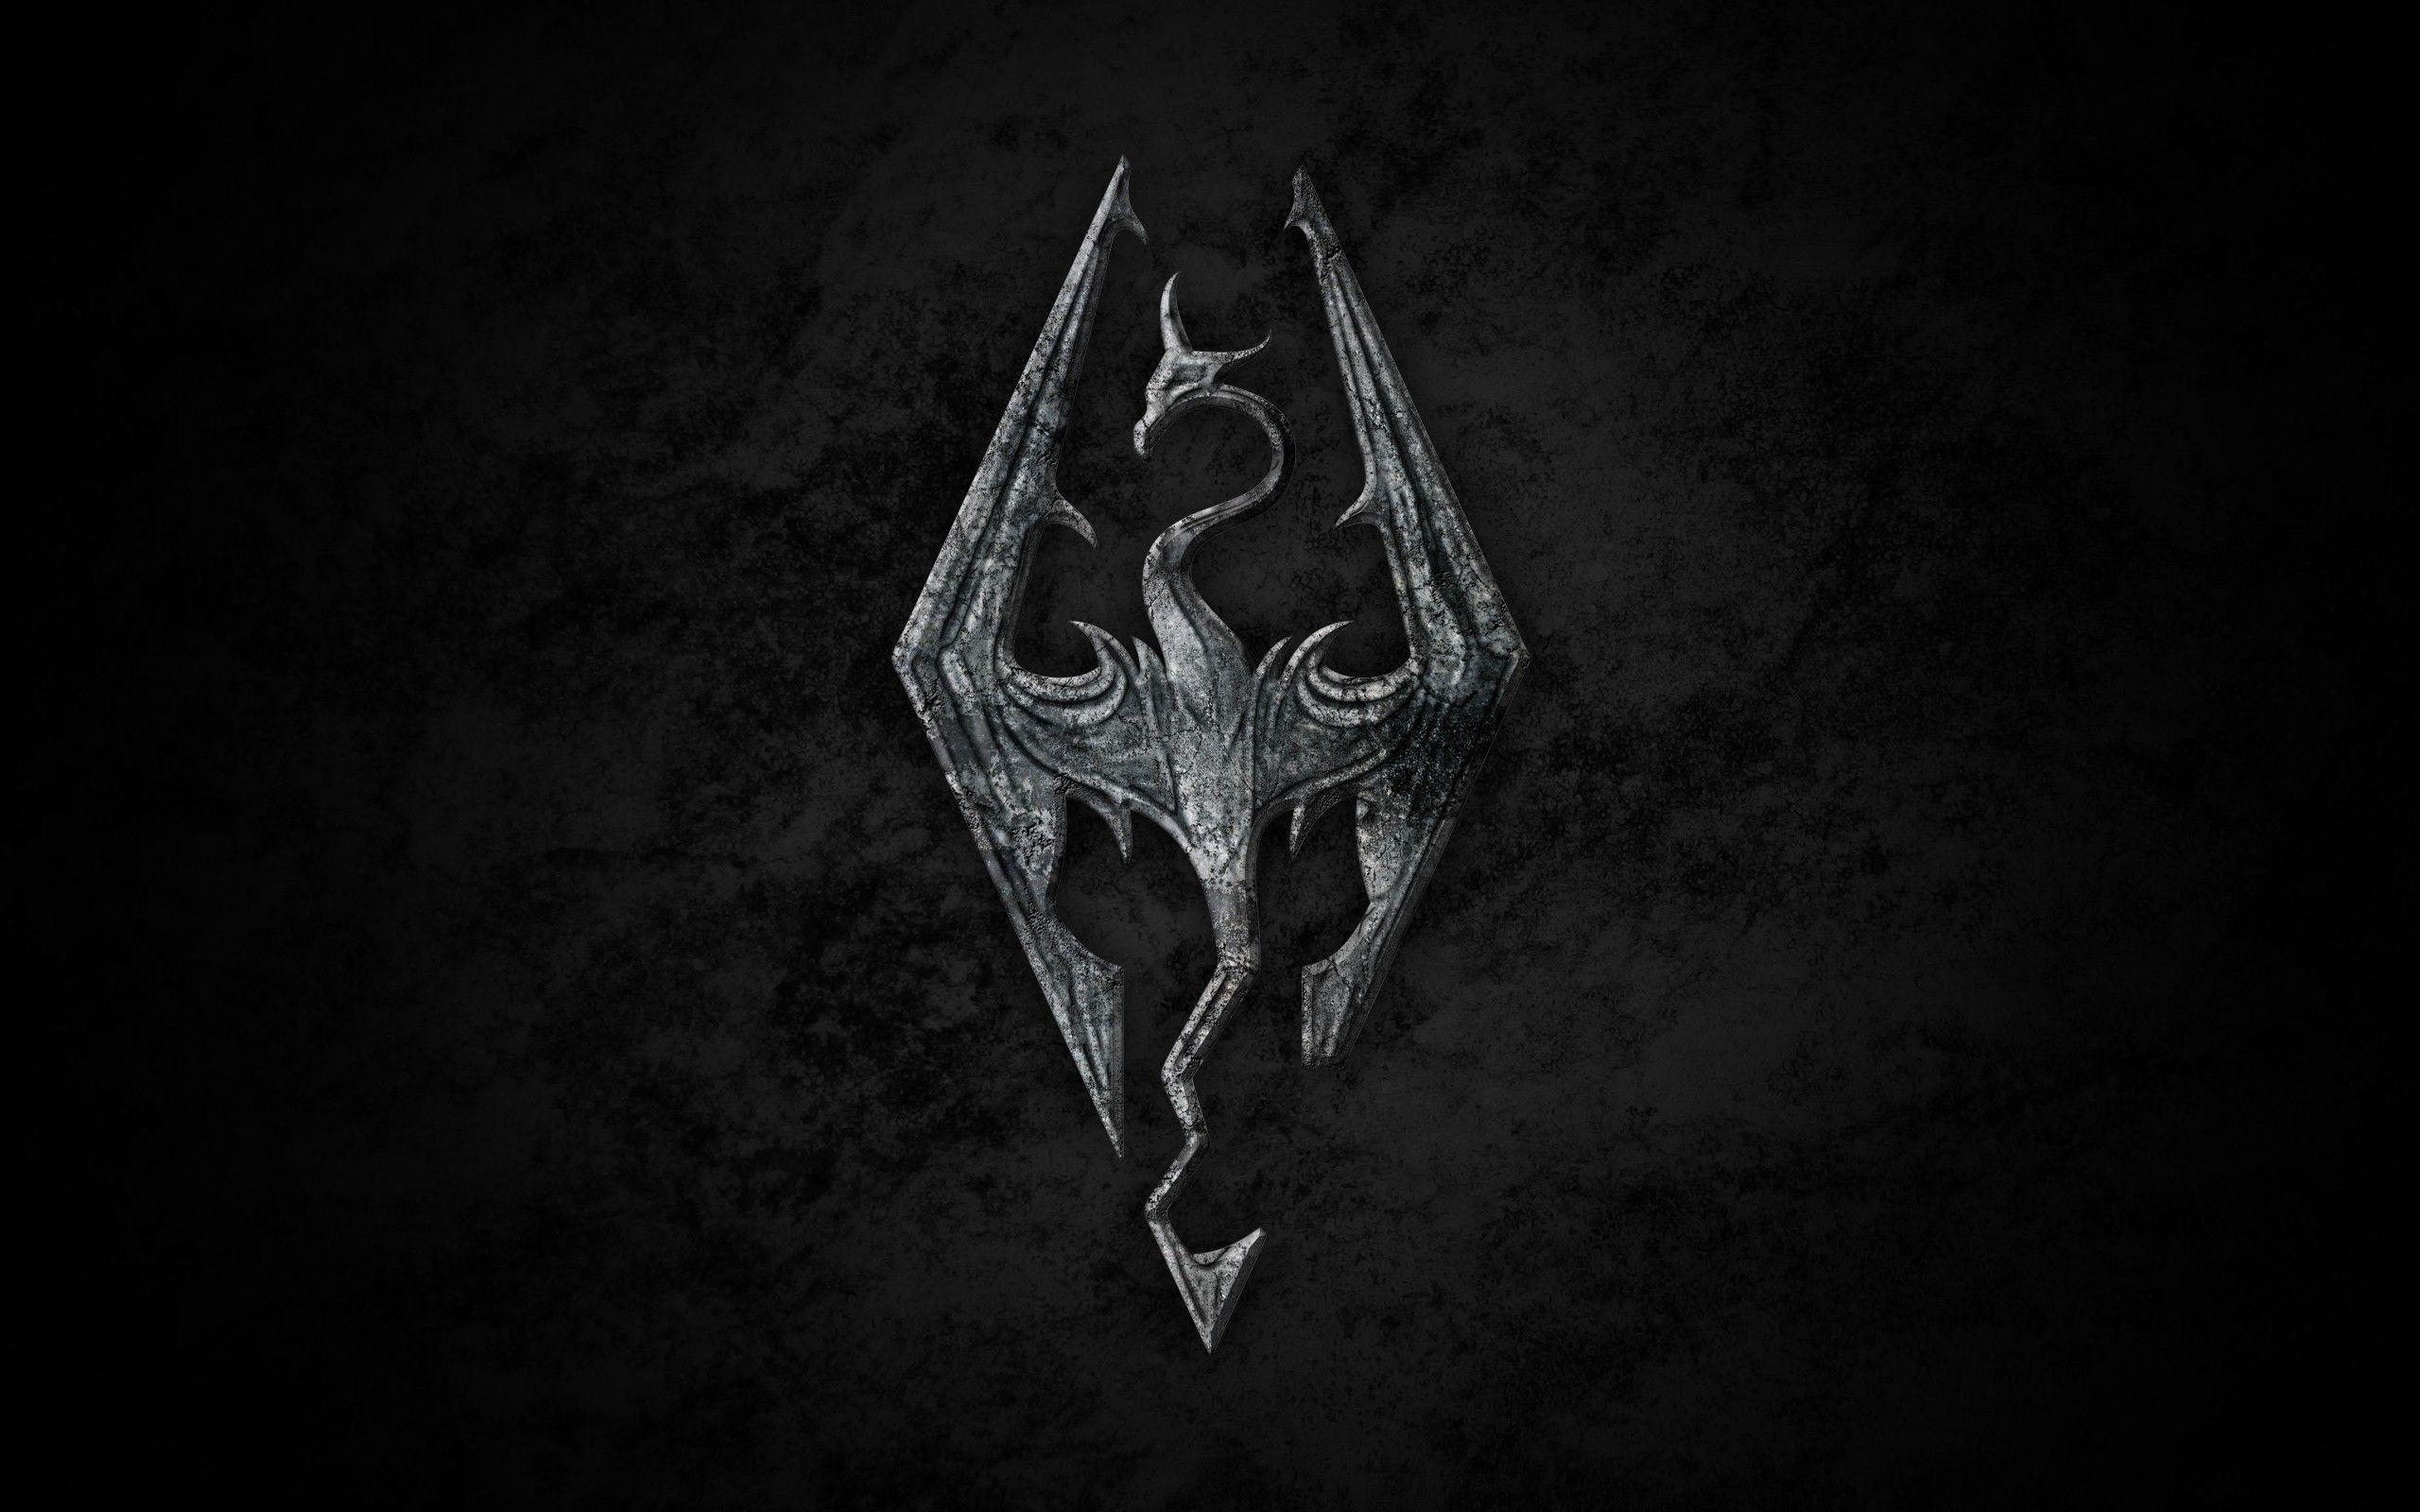 skyrim 1920x1080 wallpaper, 1080p skyrim wallpapers